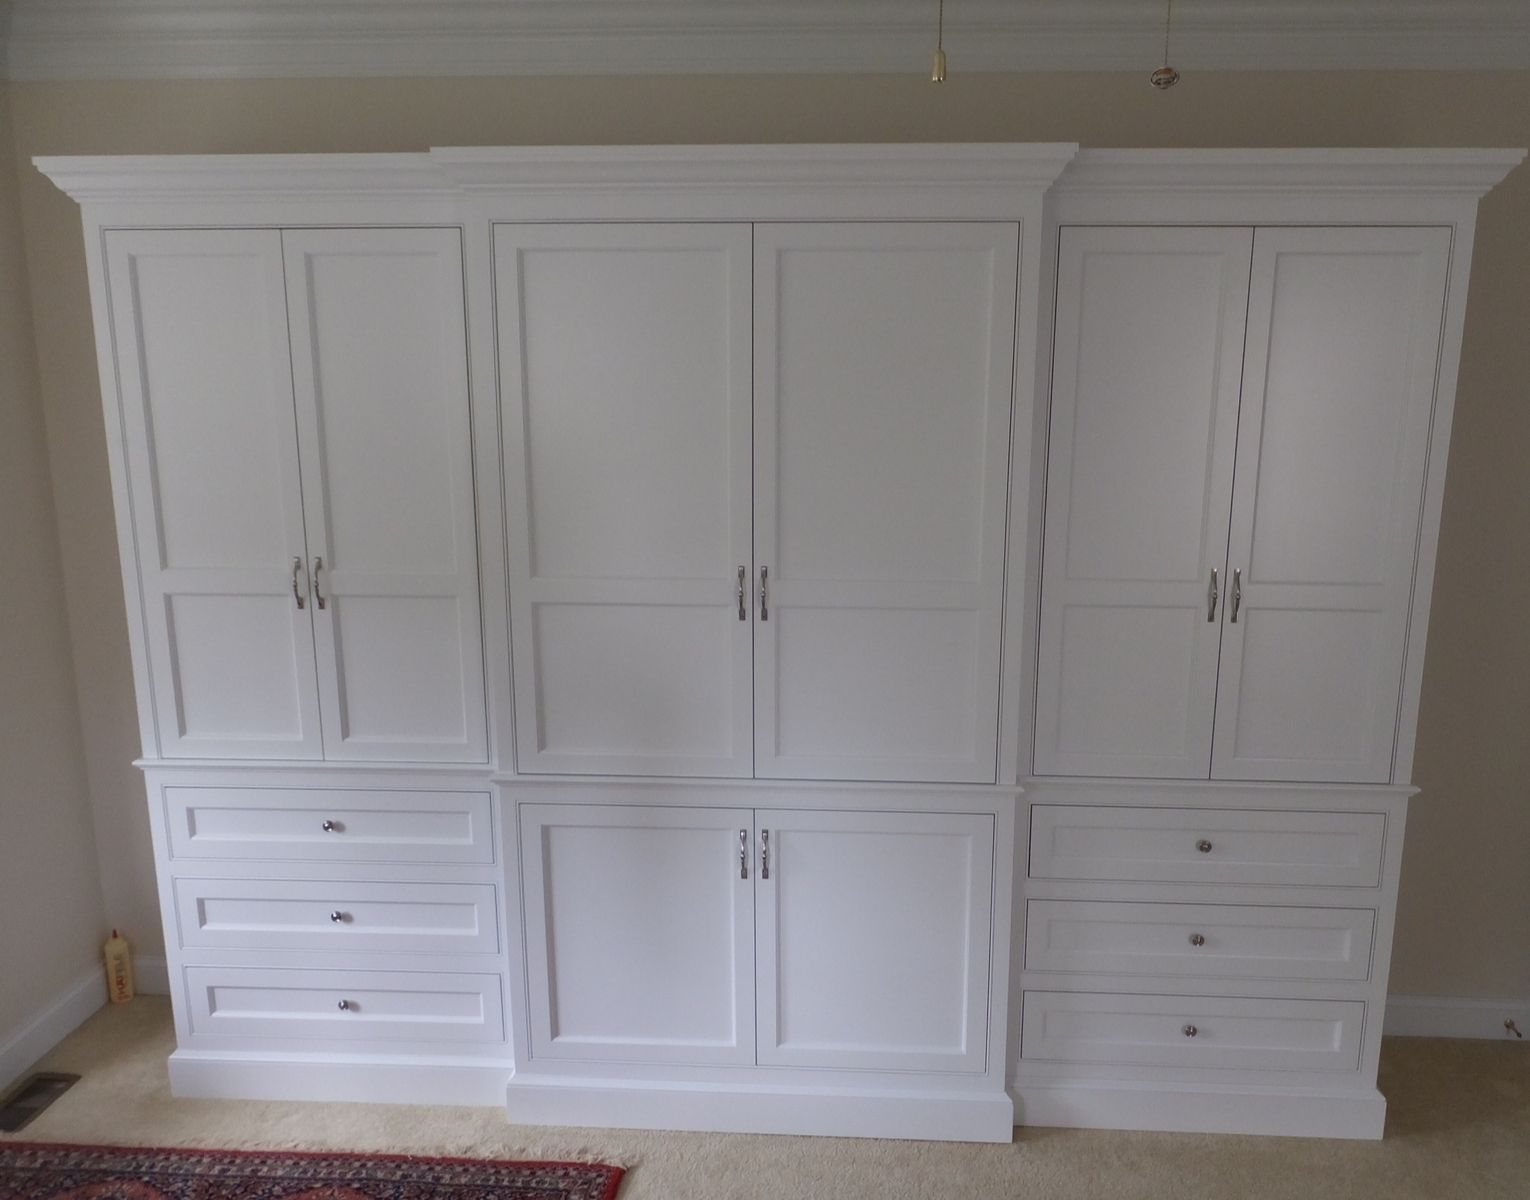 Custom Made Built In Wardrobe Armoire Fitted Bedroom Furniture